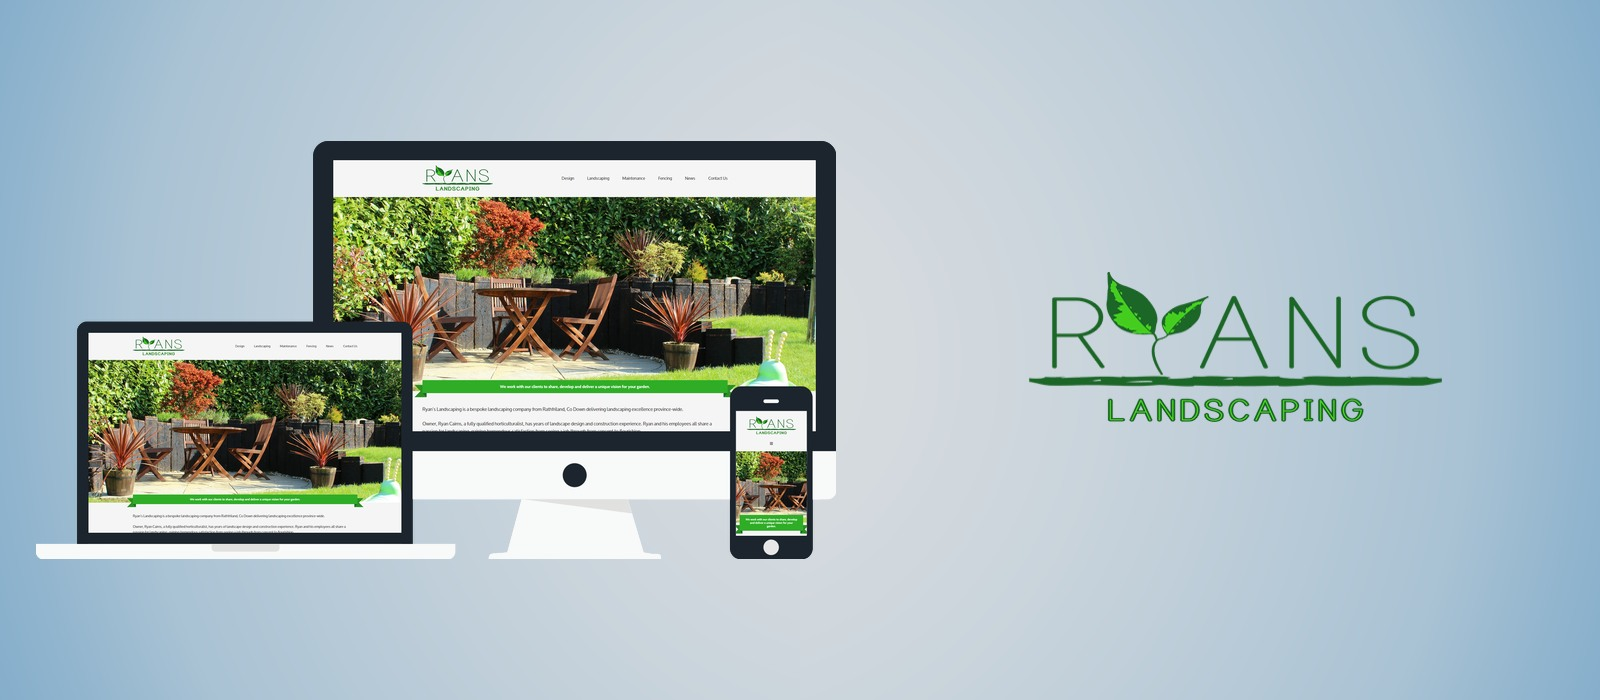 Ryan's Landscaping Featured Image